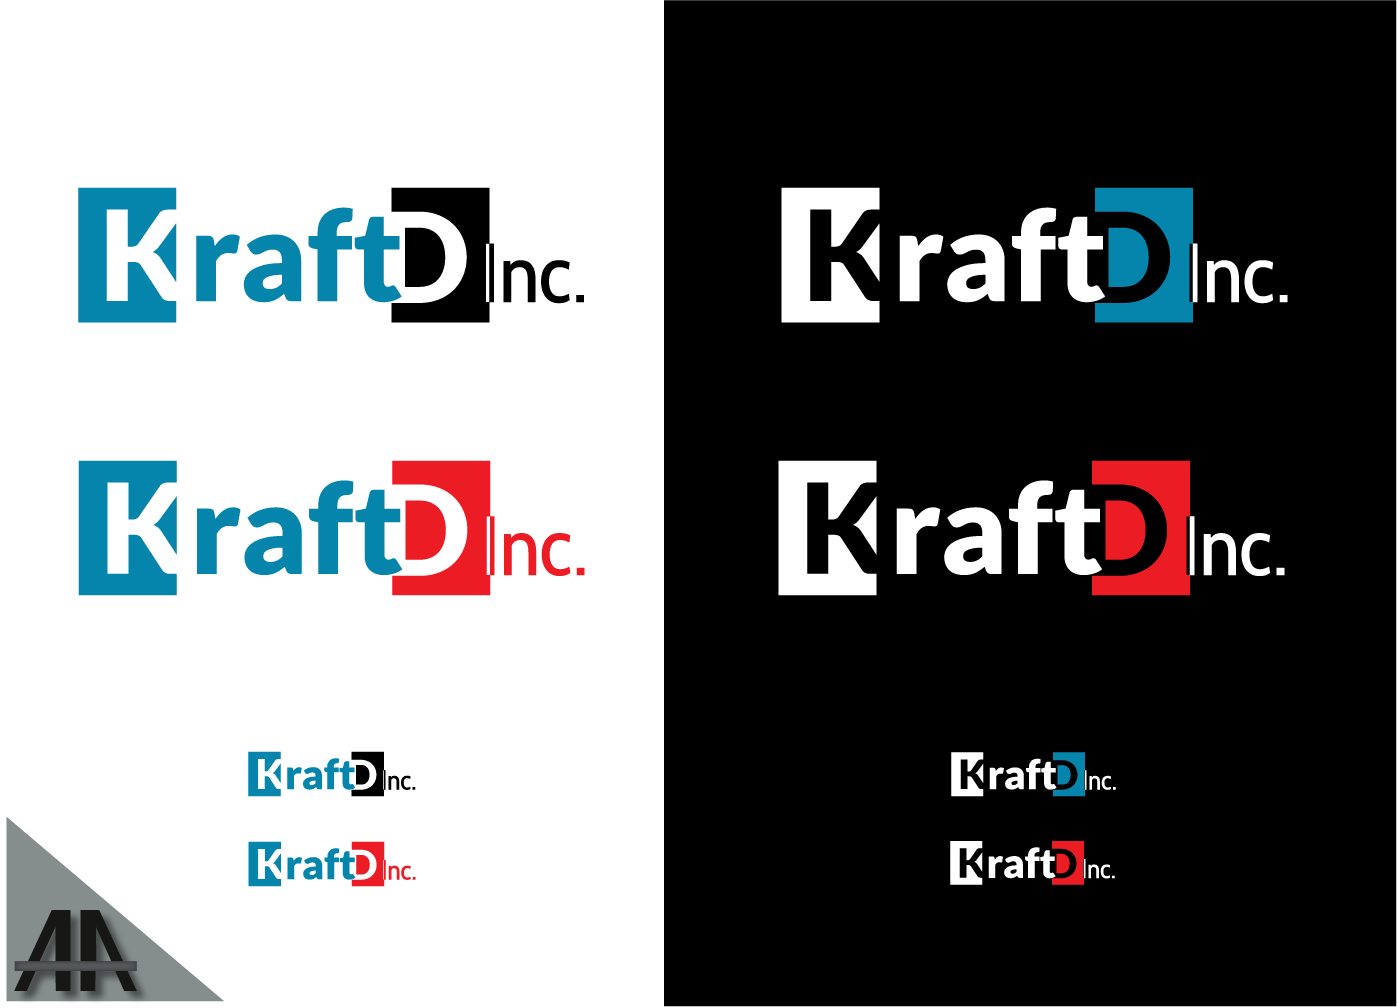 Logo Design by Thanasis Athanasopoulos - Entry No. 307 in the Logo Design Contest Unique Logo Design Wanted for Kraft D Inc.